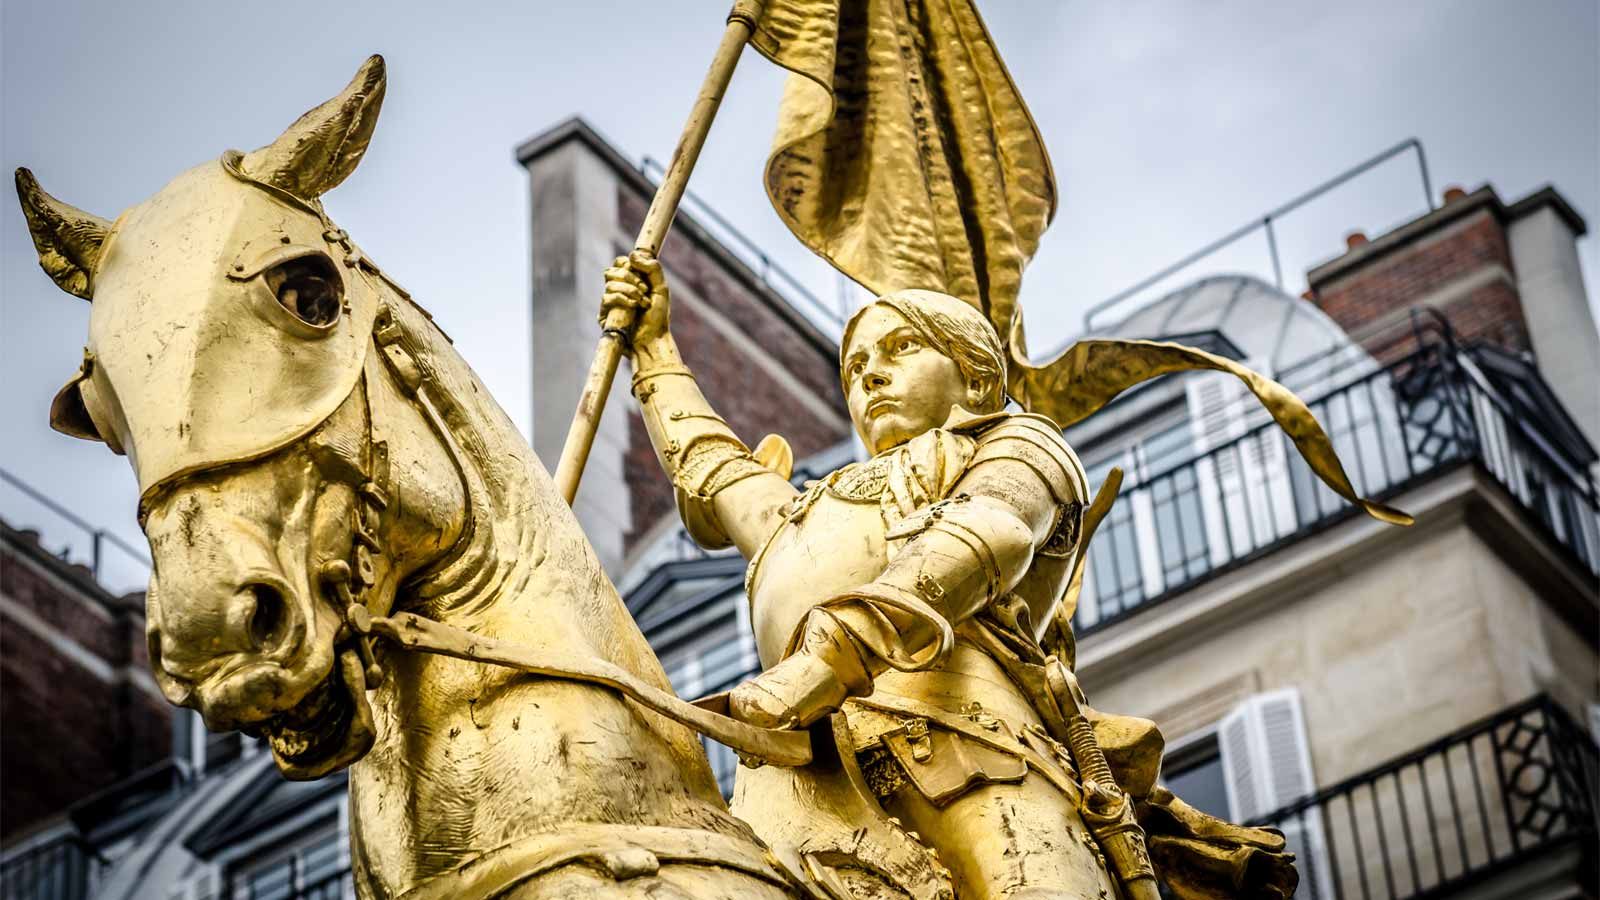 Joan of Arc | source: BlackMac/Shutterstock.com